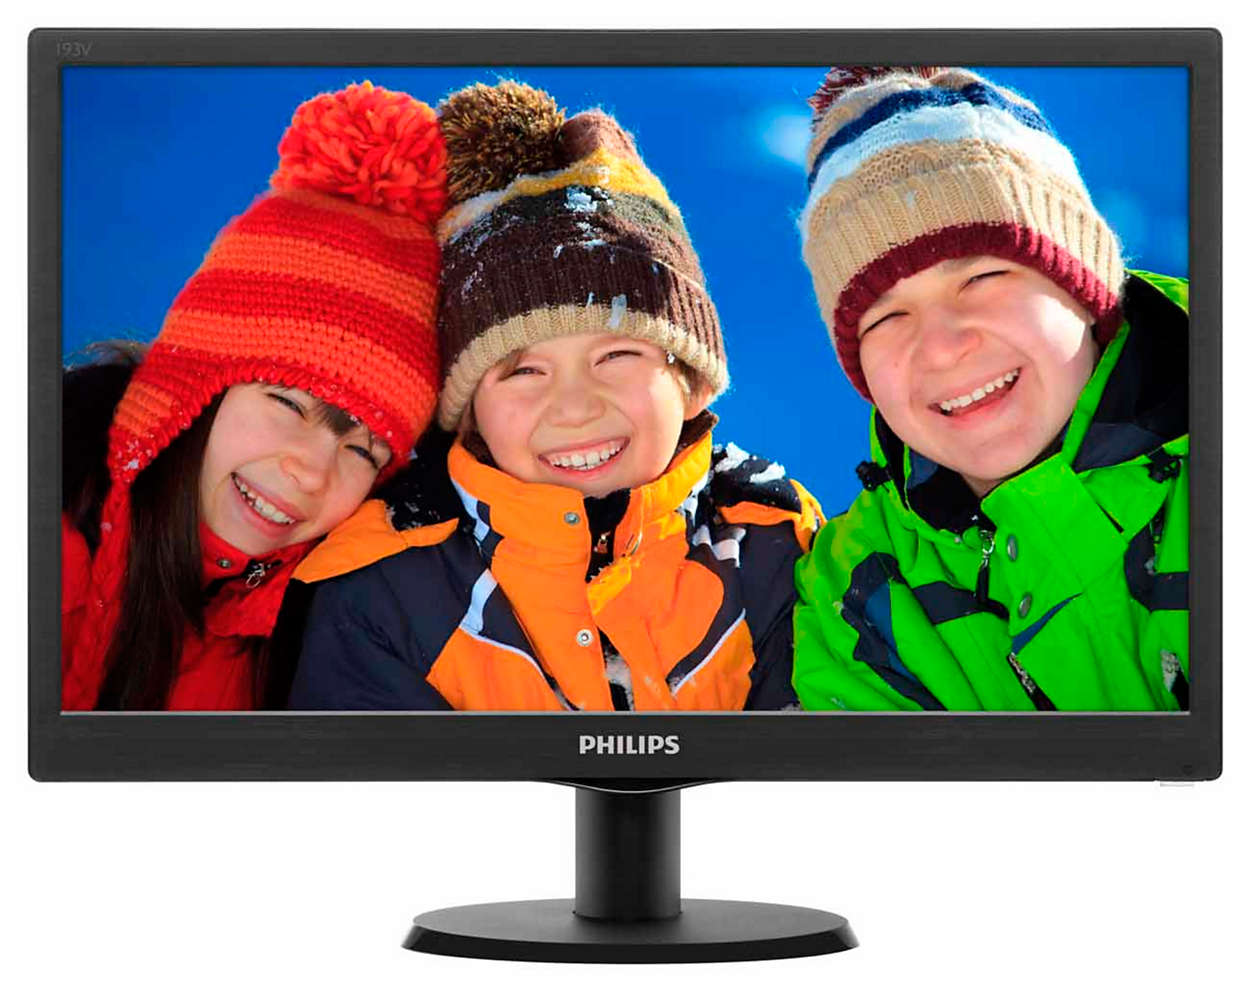 Philips led 18.5inc (193v5)